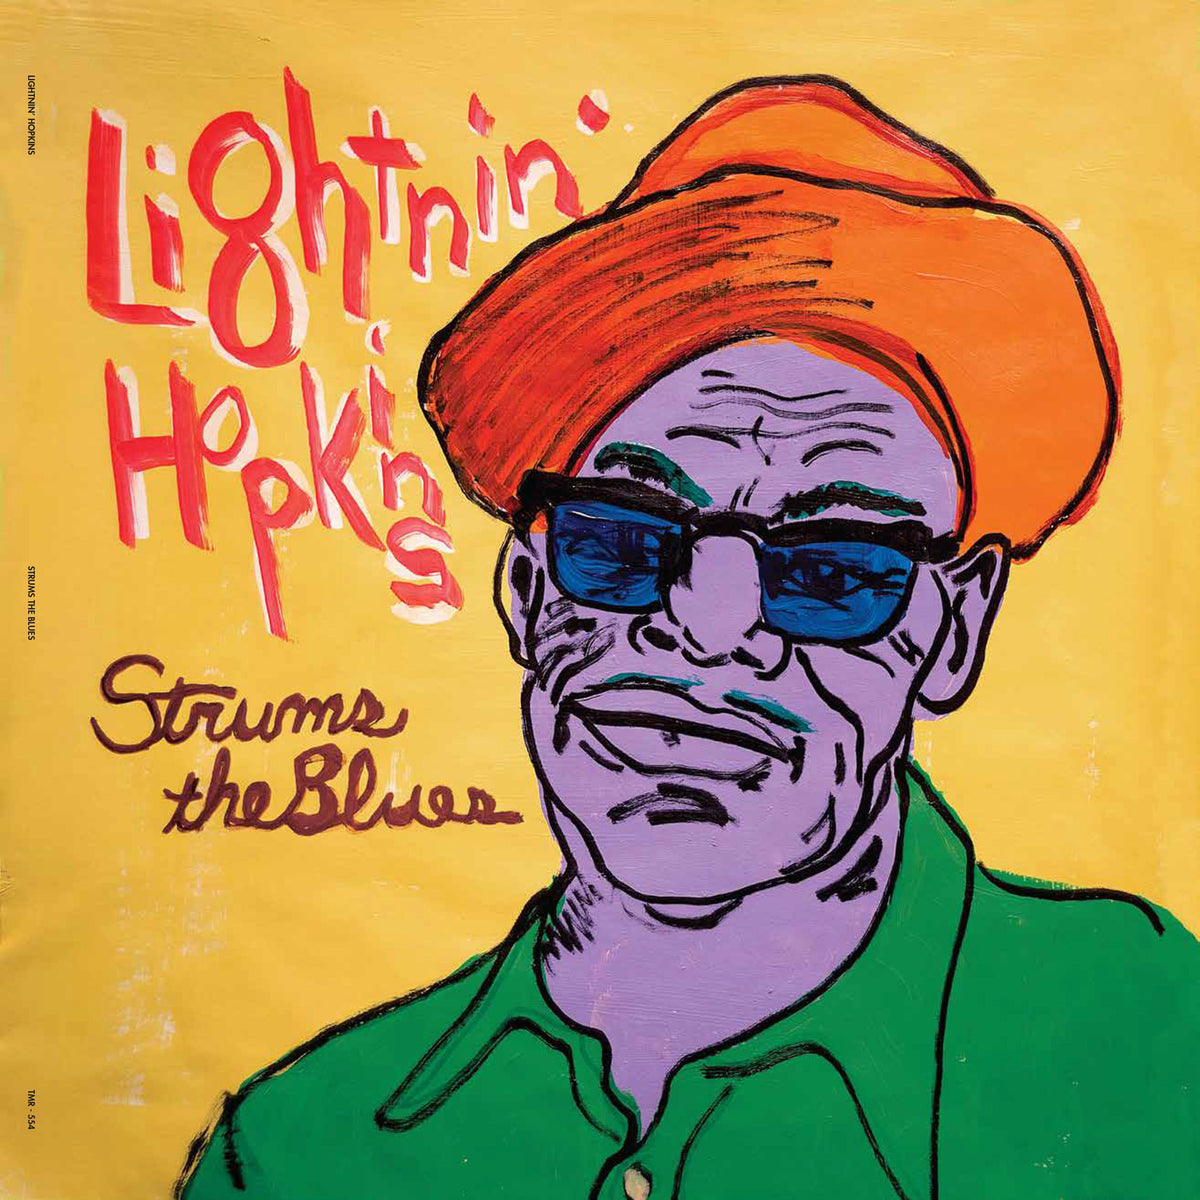 Lightin' Hopkins: Strums The Blues (180g) Vinyl LP (Record Store Day)